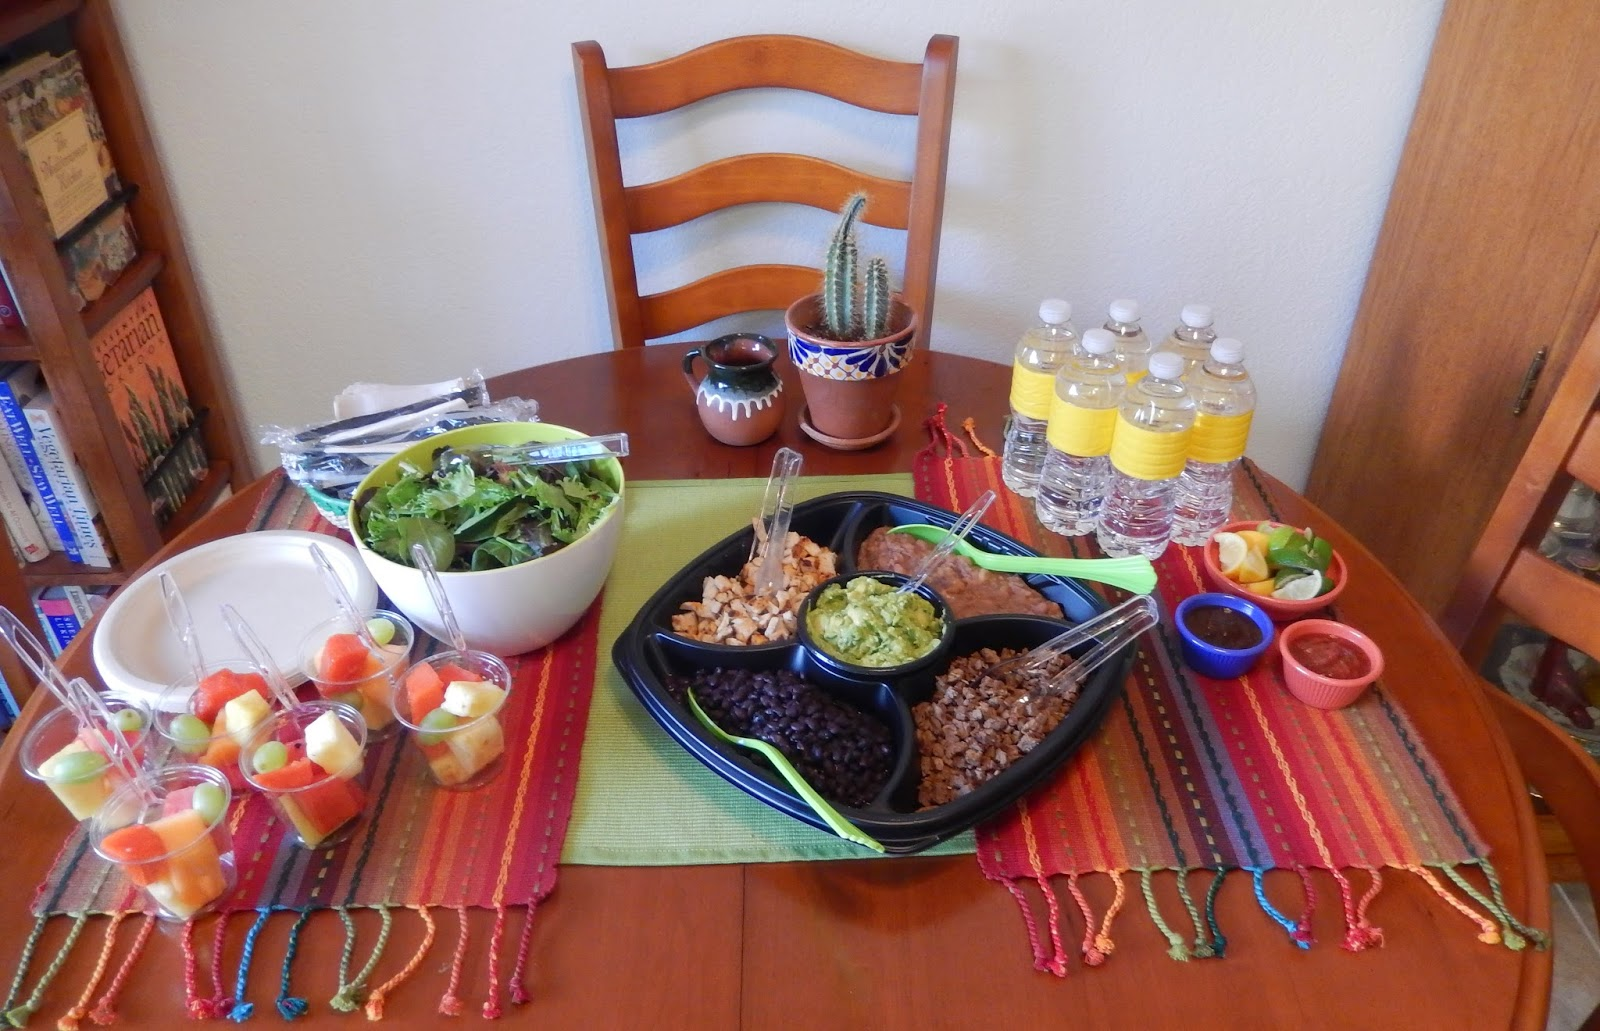 Mexican%2BFiesta%2BMeeting%2BLuncheon%2BBrunch%2BCinco%2Bde%2BMayo%2BRubios%2BEggface Weight Loss Recipes Healthy Meetings (or Parties) Made Easy